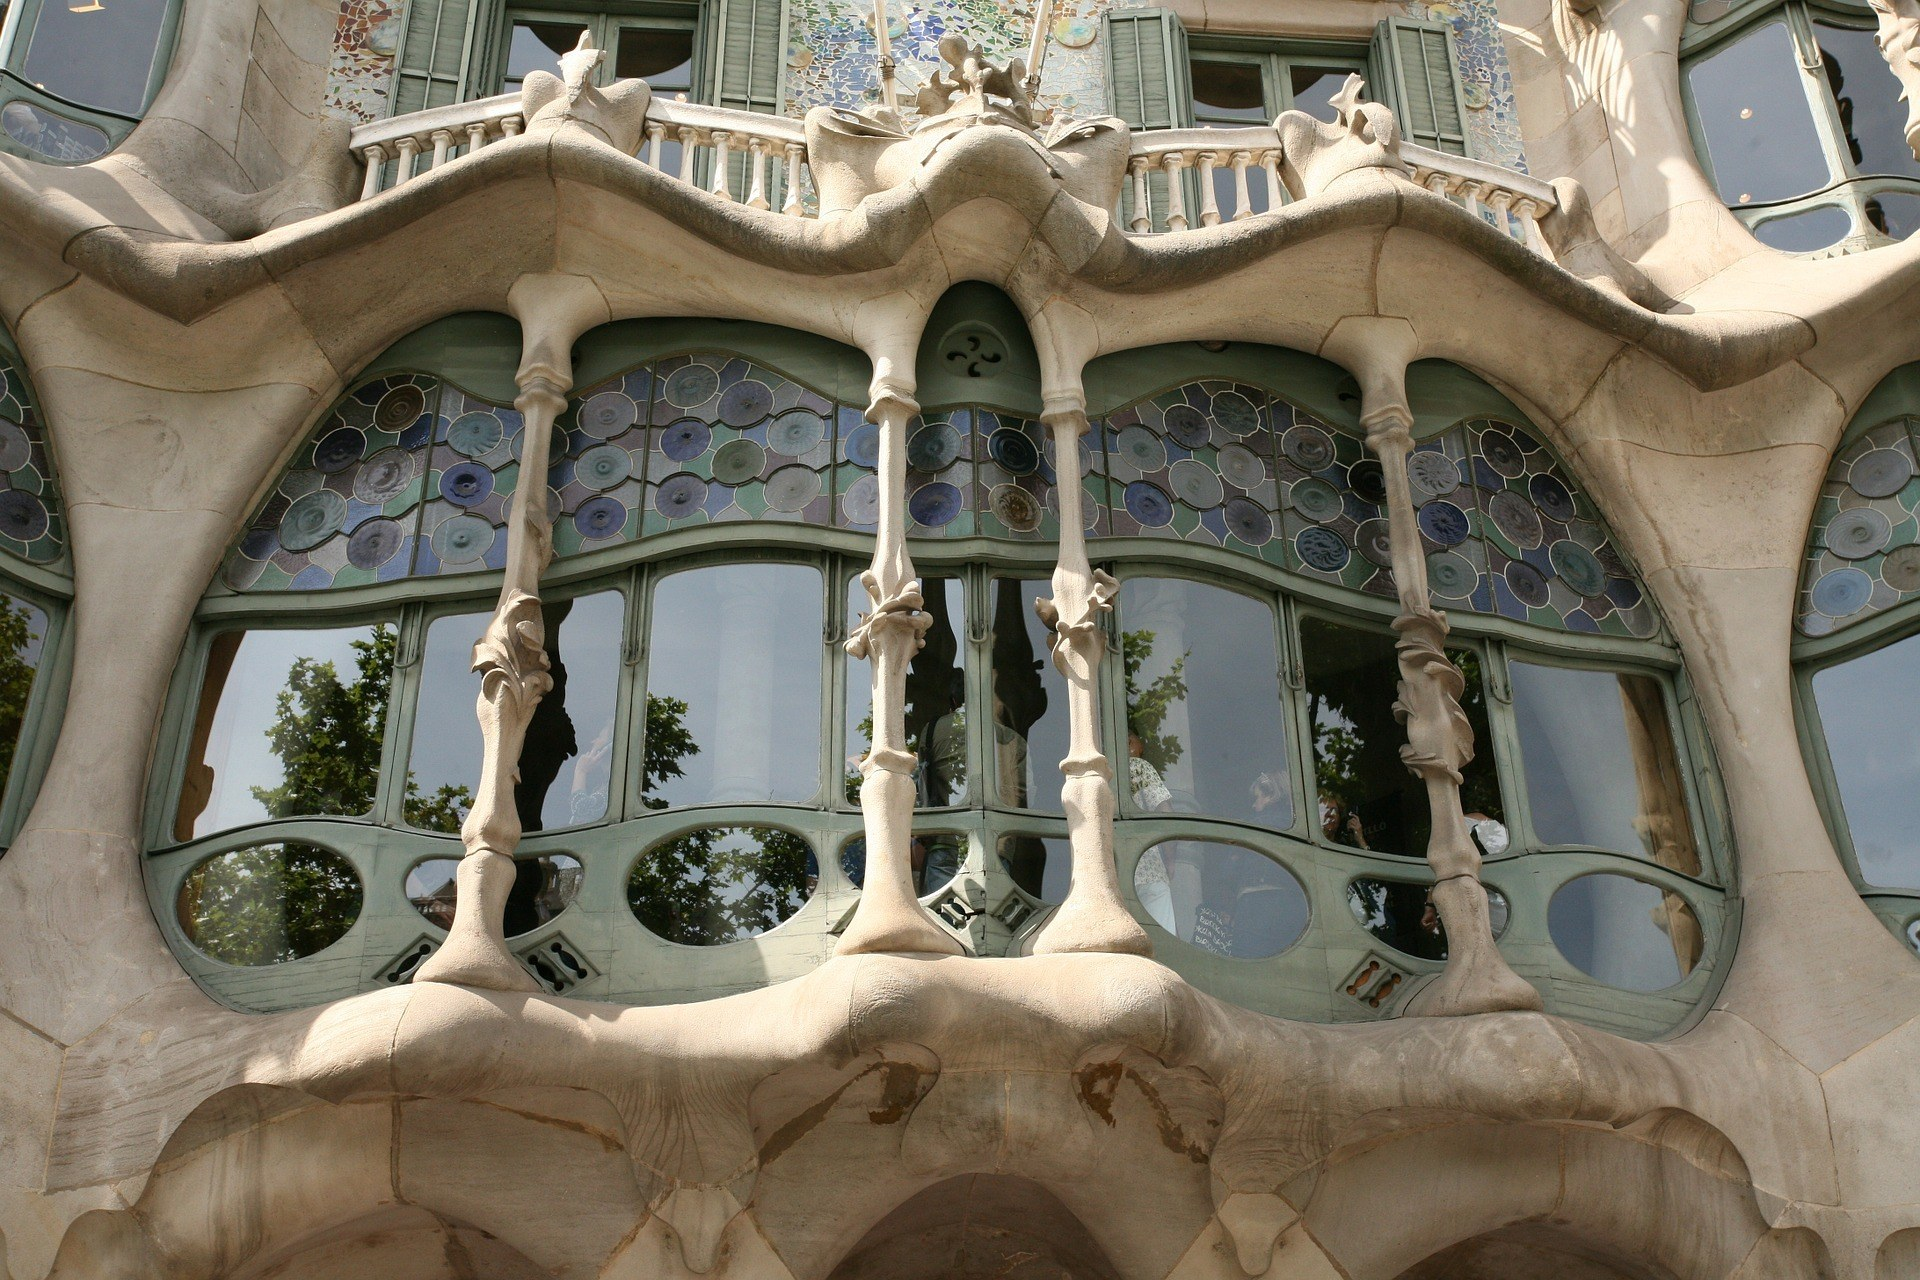 Visiting Barcelona: 5 Places Not to Miss - Casa Batlló